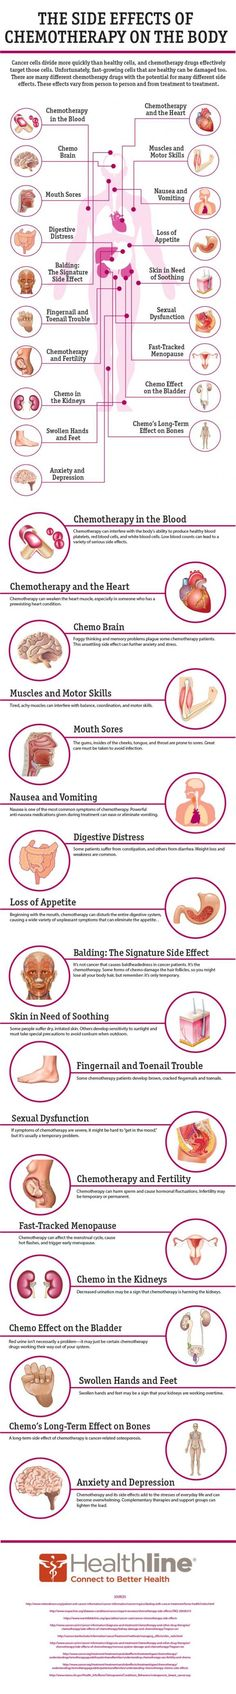 The side effects of chemotherapy on the body (Infographic) | ScienceDump